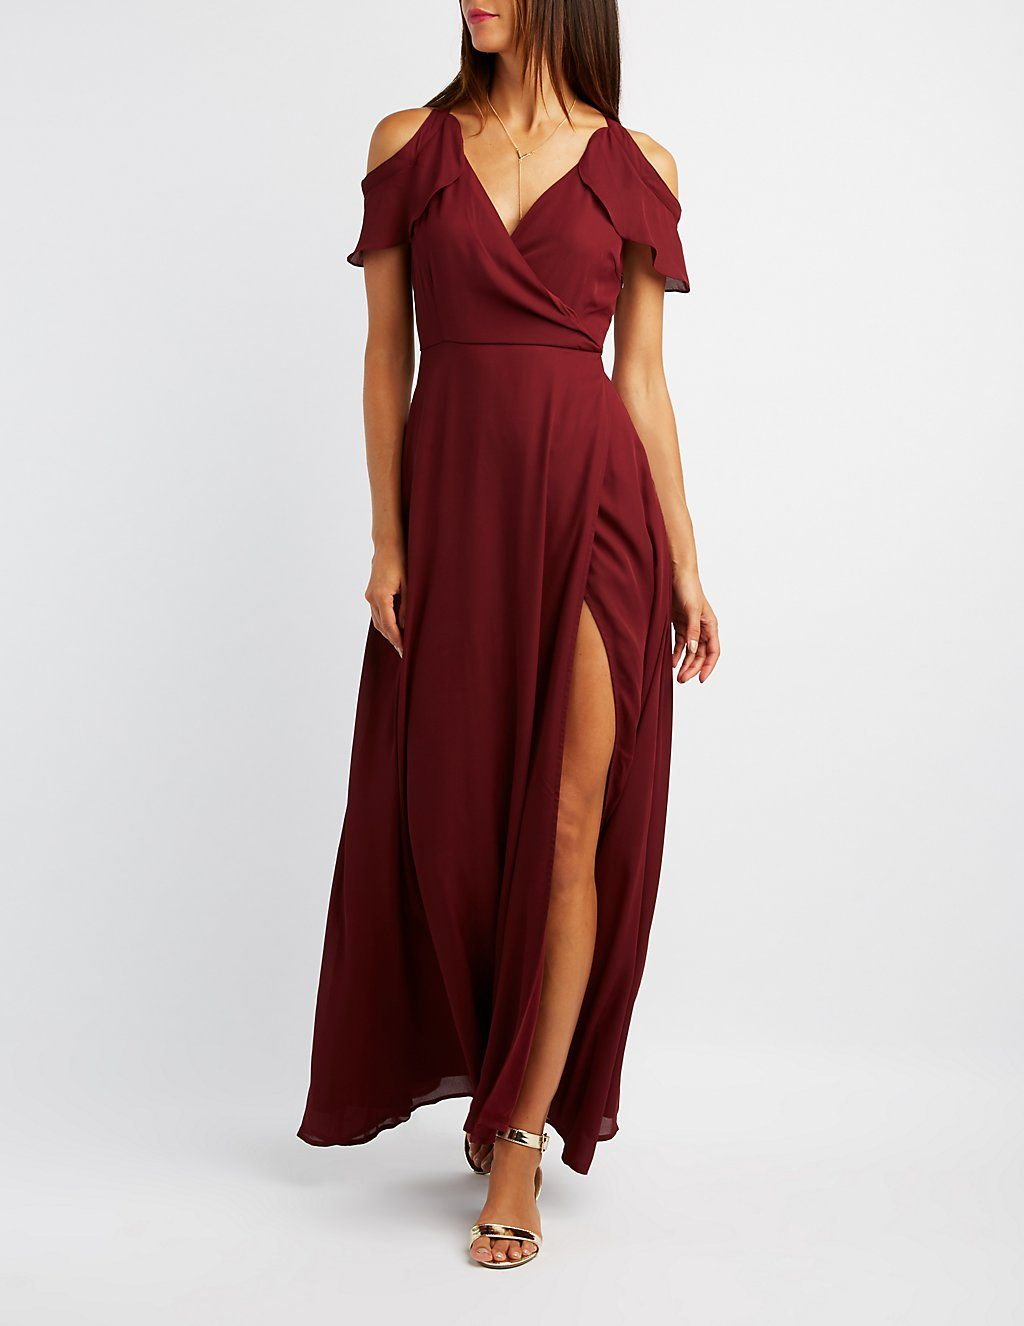 Cold Shoulder Ruffle Surplice Maxi Dress Charlotte Russe Long Sleeve Evening Gowns Long Sleeve Gown Maxi Dress [ 1326 x 1024 Pixel ]